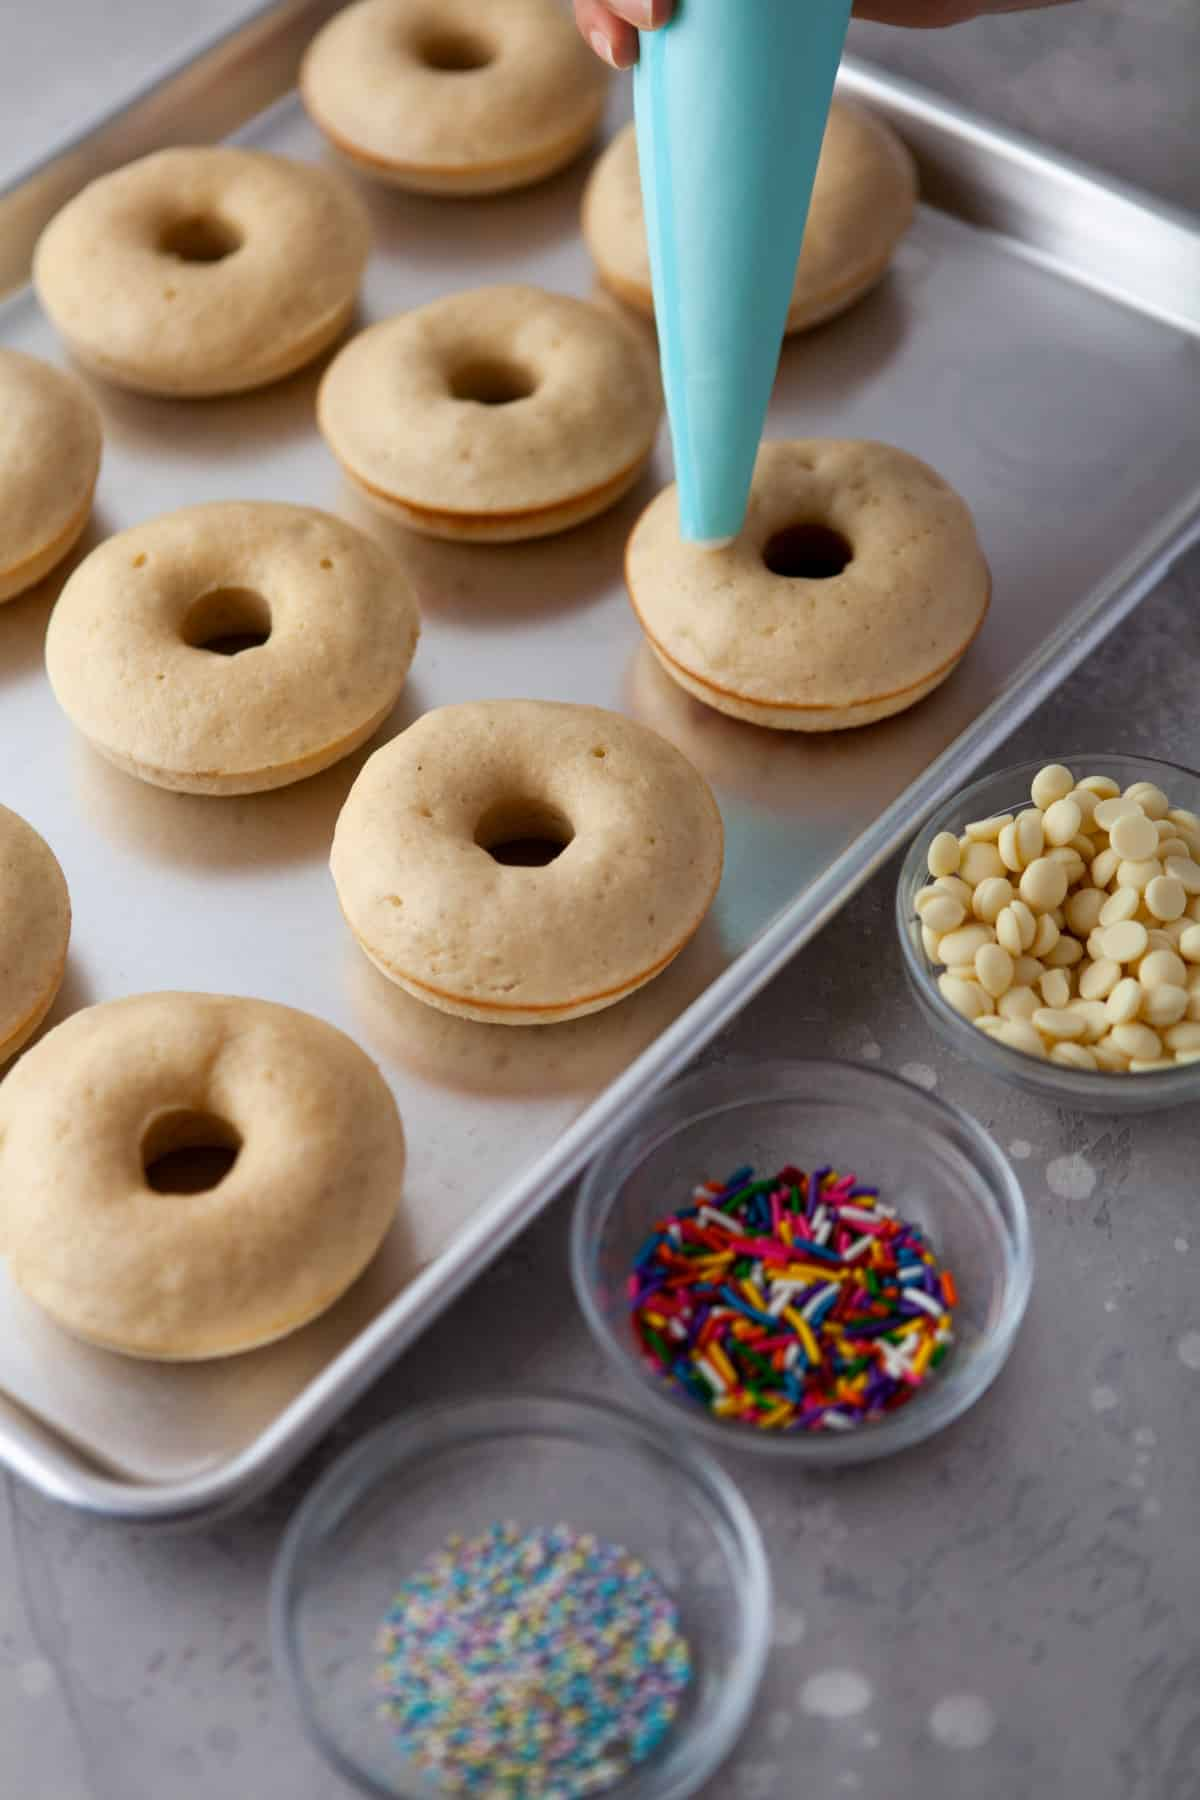 Icing donuts